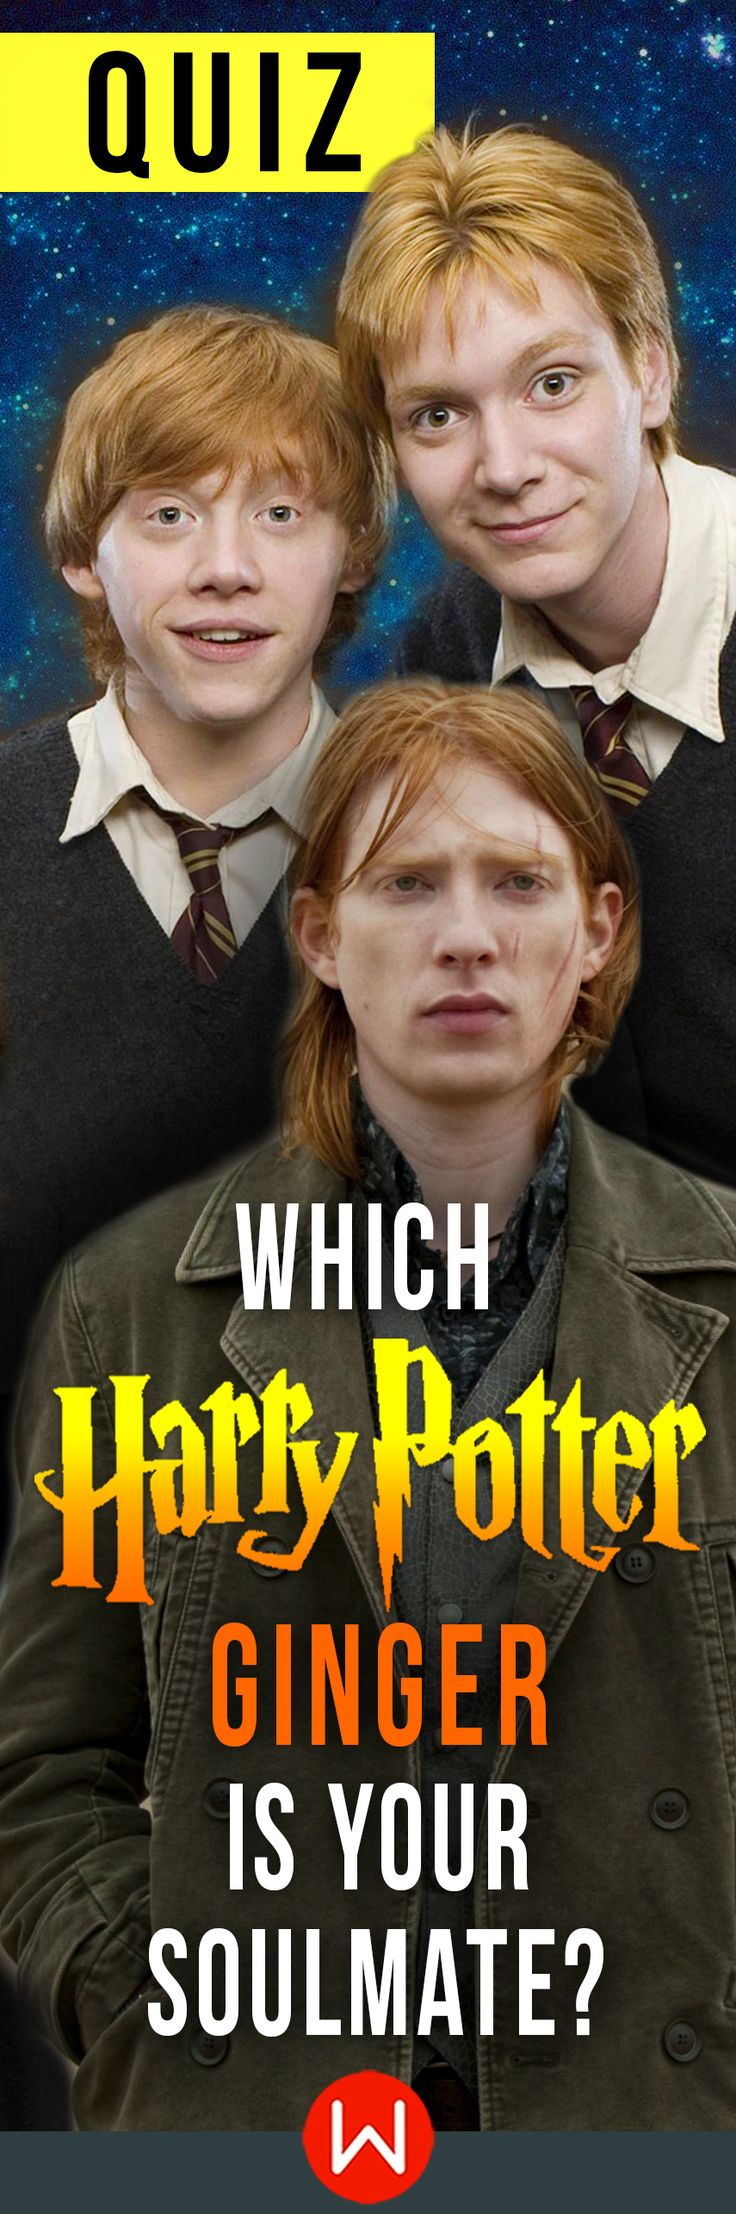 Have thought Fred weasley harry potter